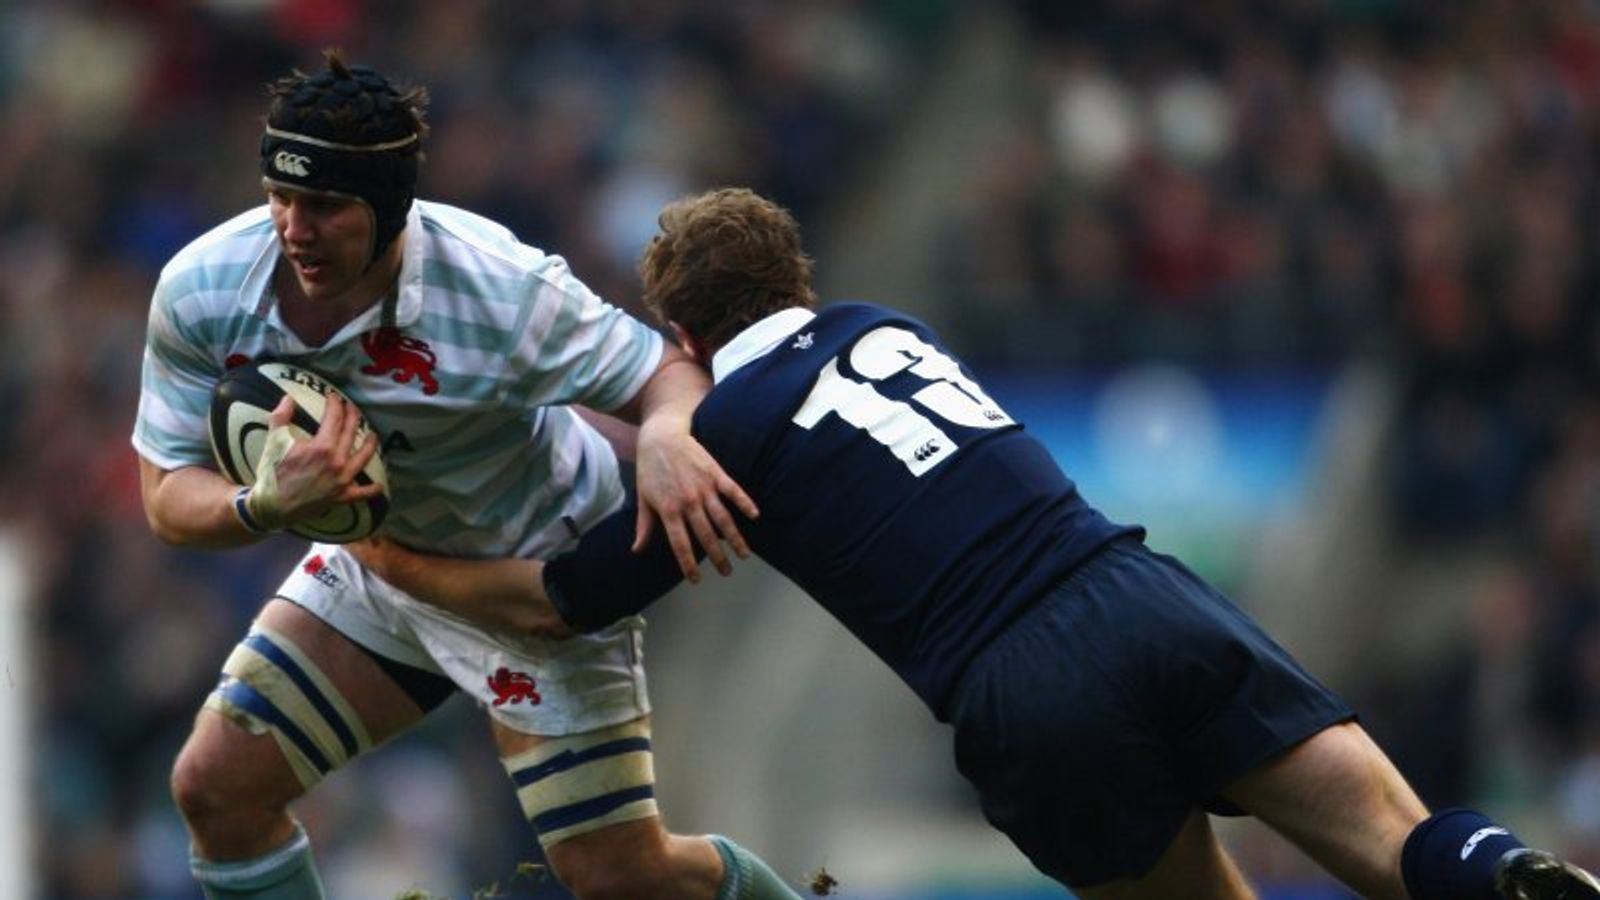 oxford cambridge rugby betting odds